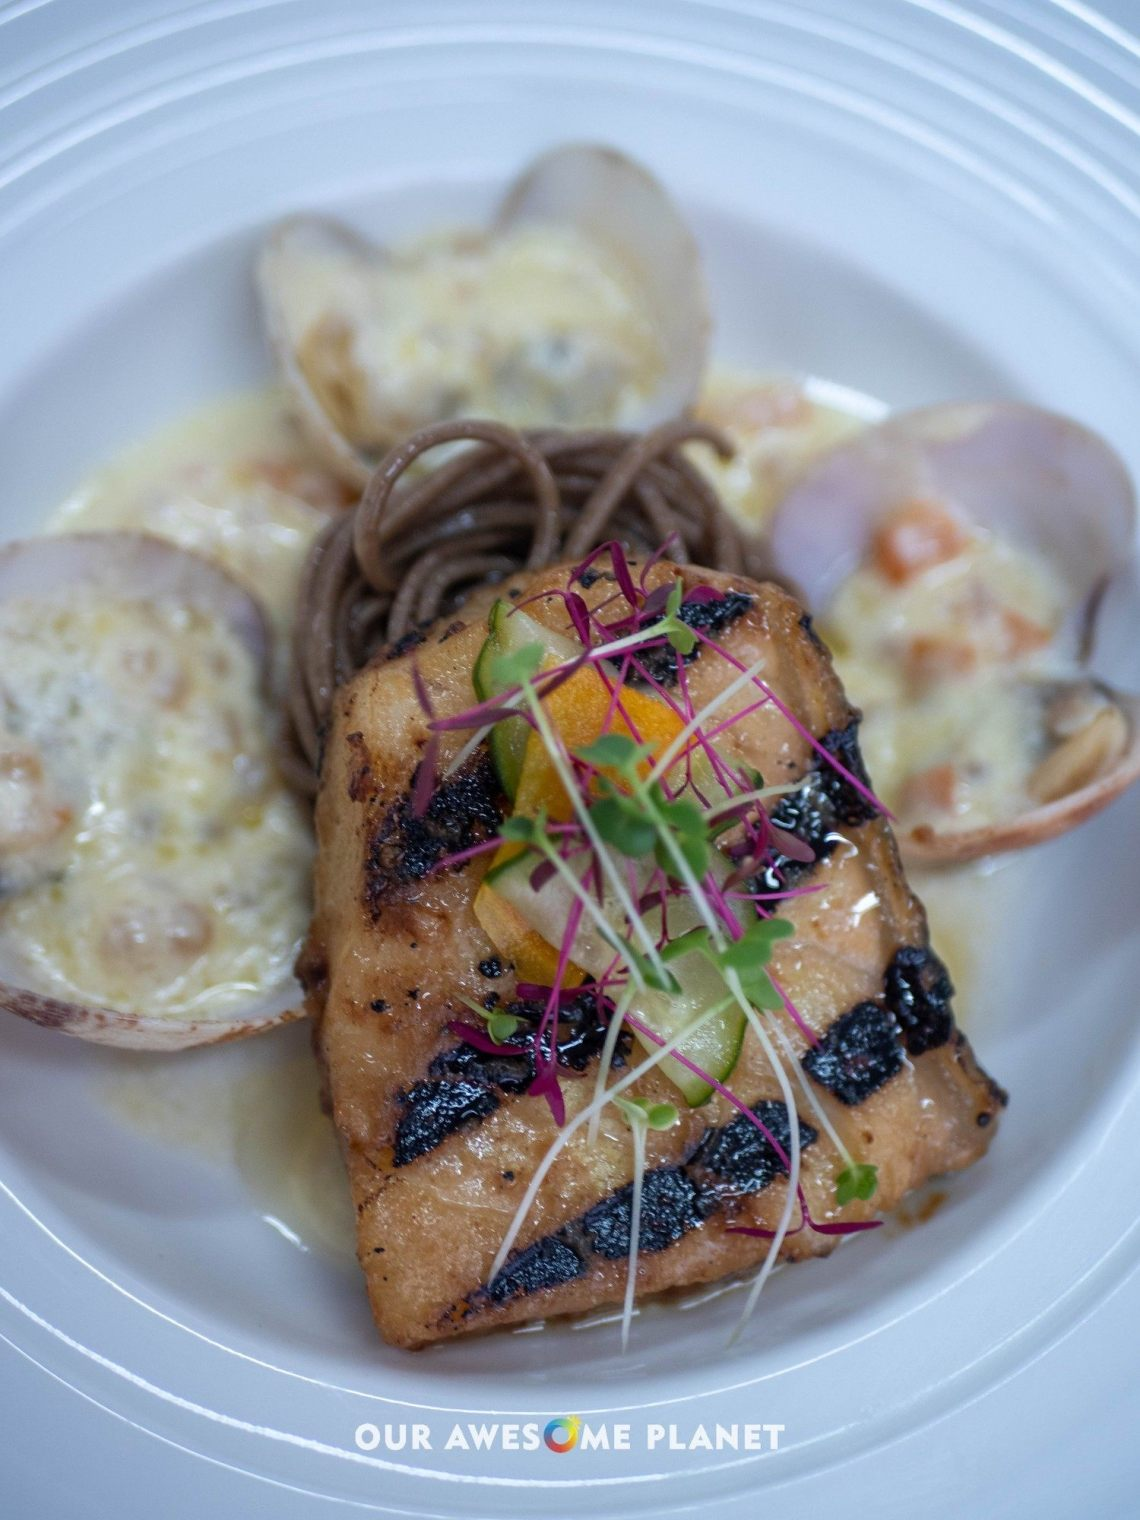 Grilled Miso Marinated Sea Bass on Soba Noodle Salad, Clams, Cream Sauce and Tapioca Pearl